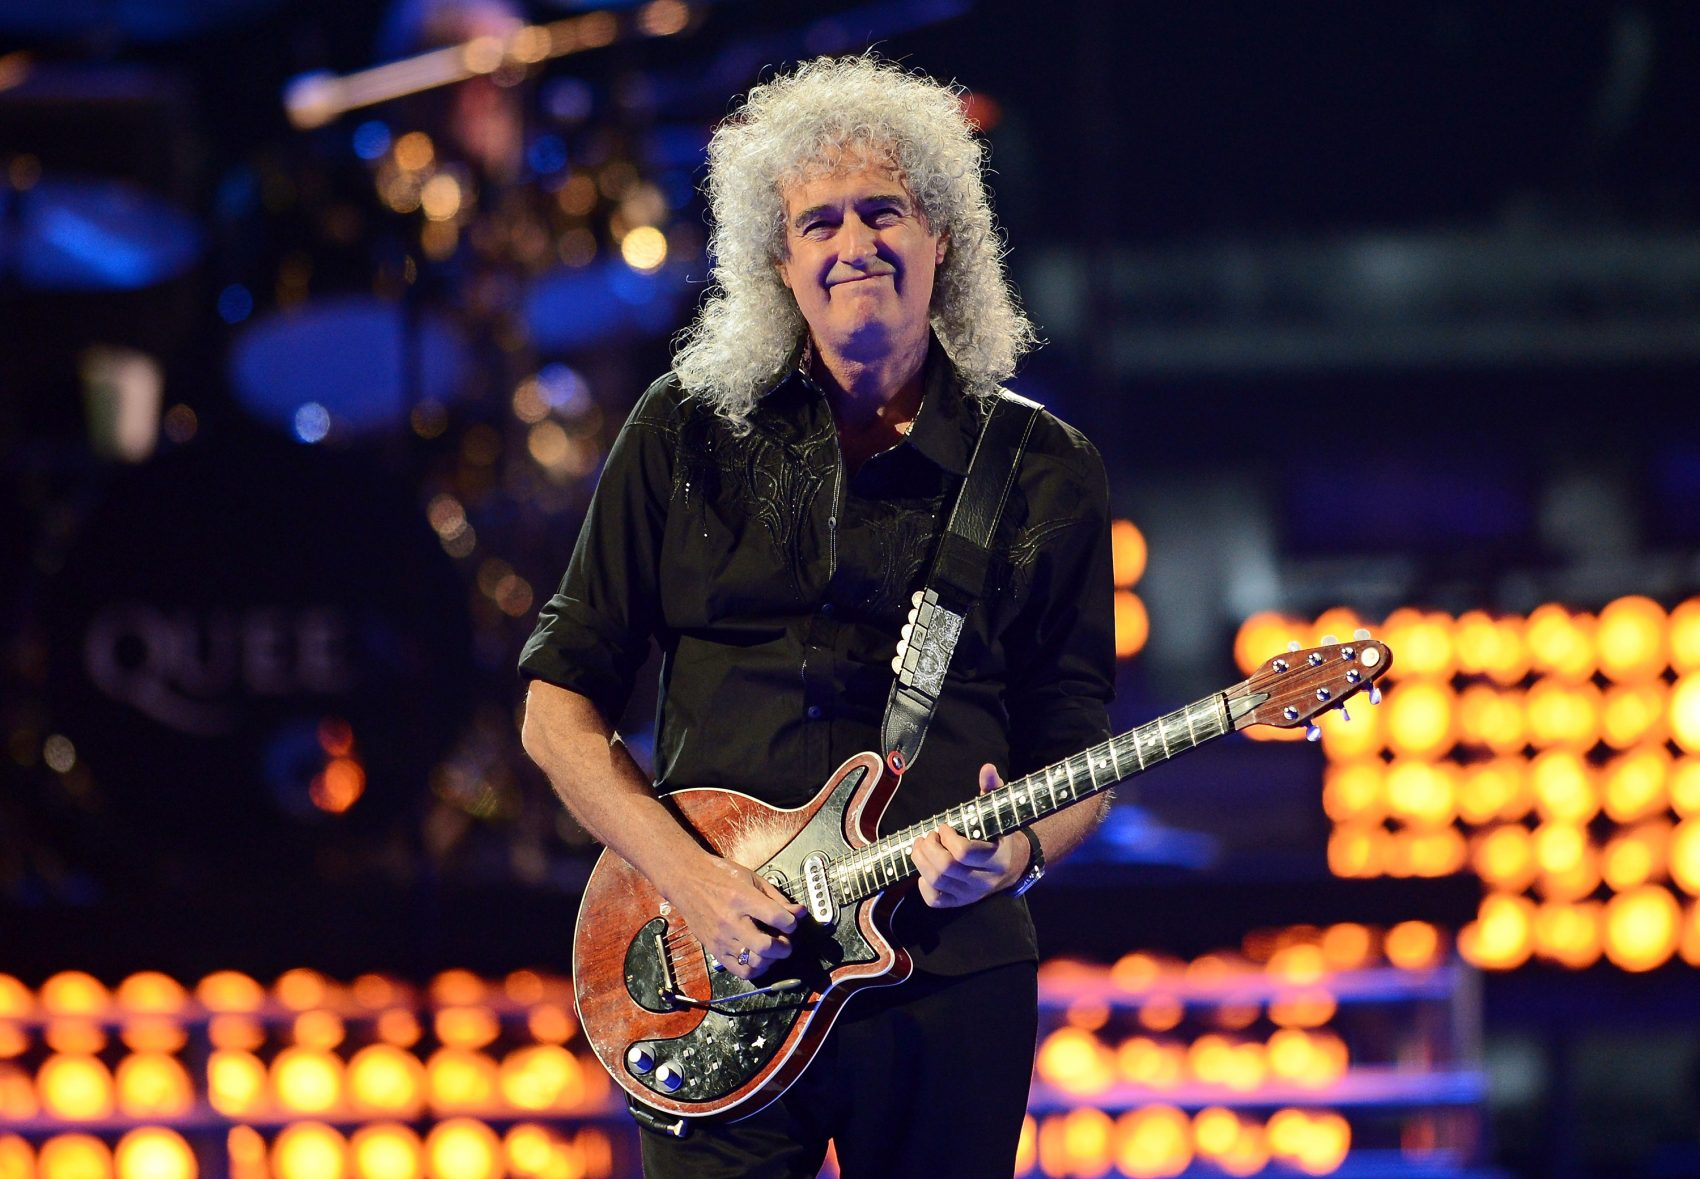 Guitarist Brian May of Queen, pictured here performing in 2013. (Ethan Miller/Getty Images for Clear Channel)